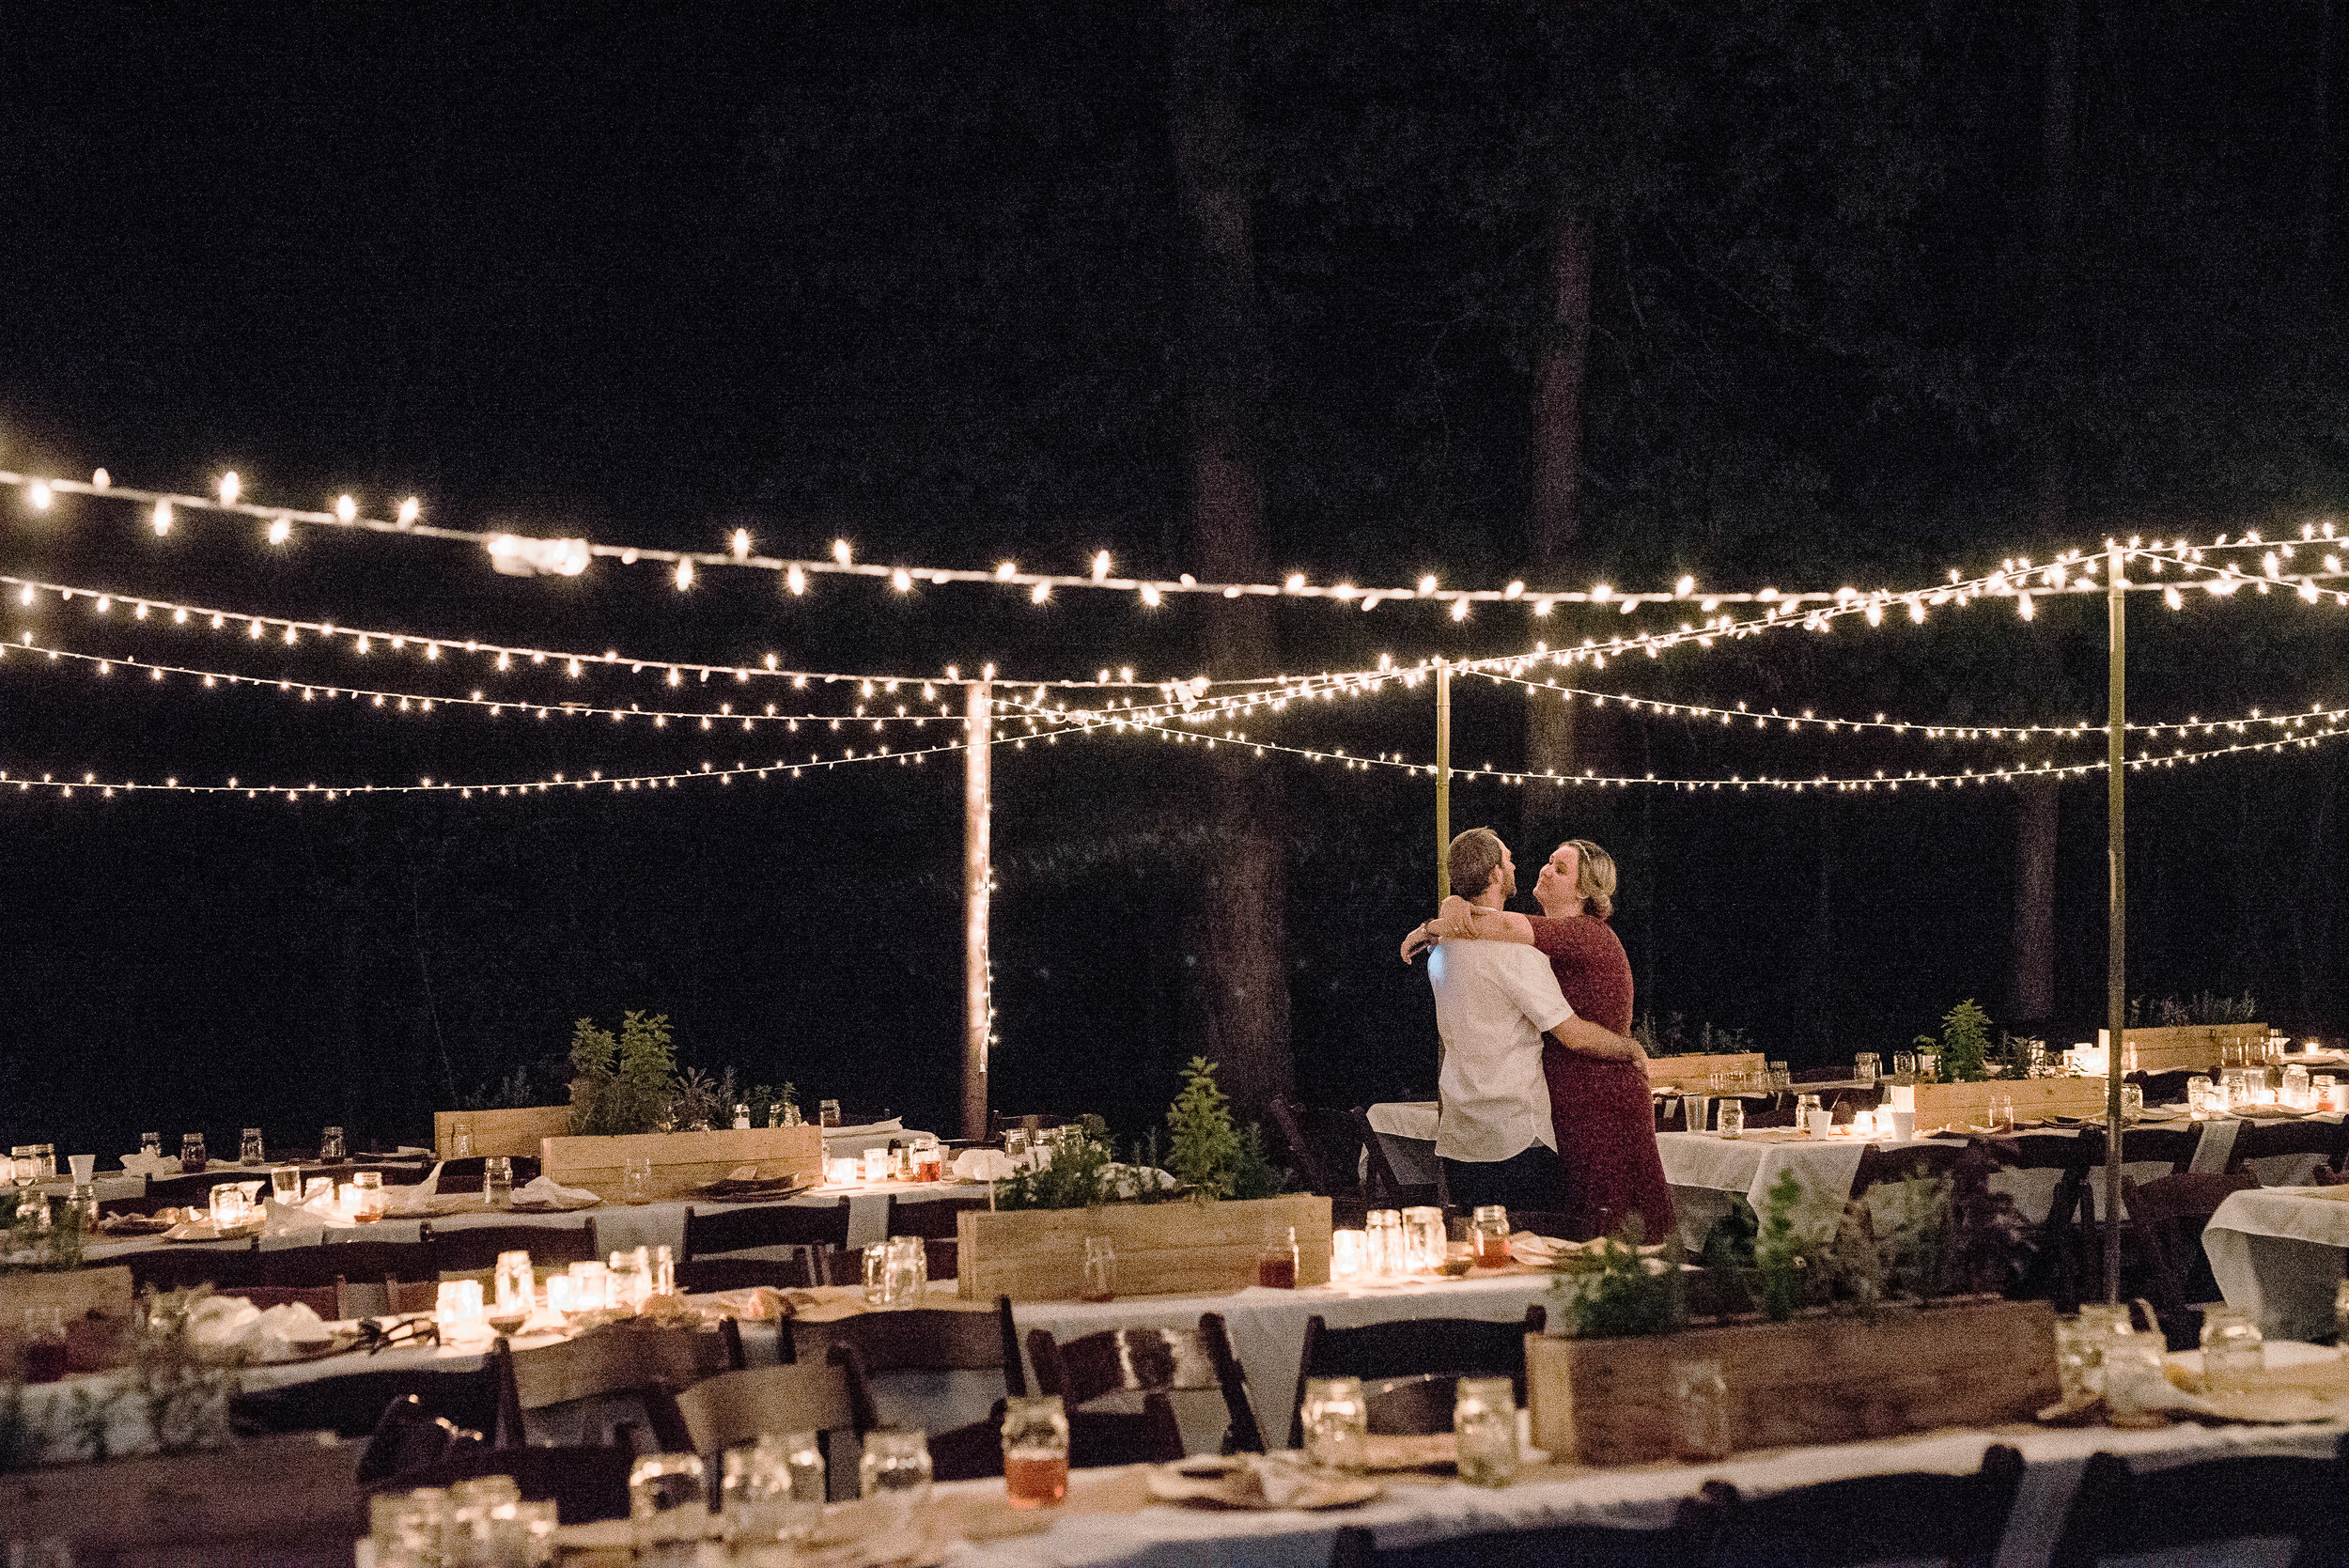 Outdoor Party, Backyard Party, String Lights